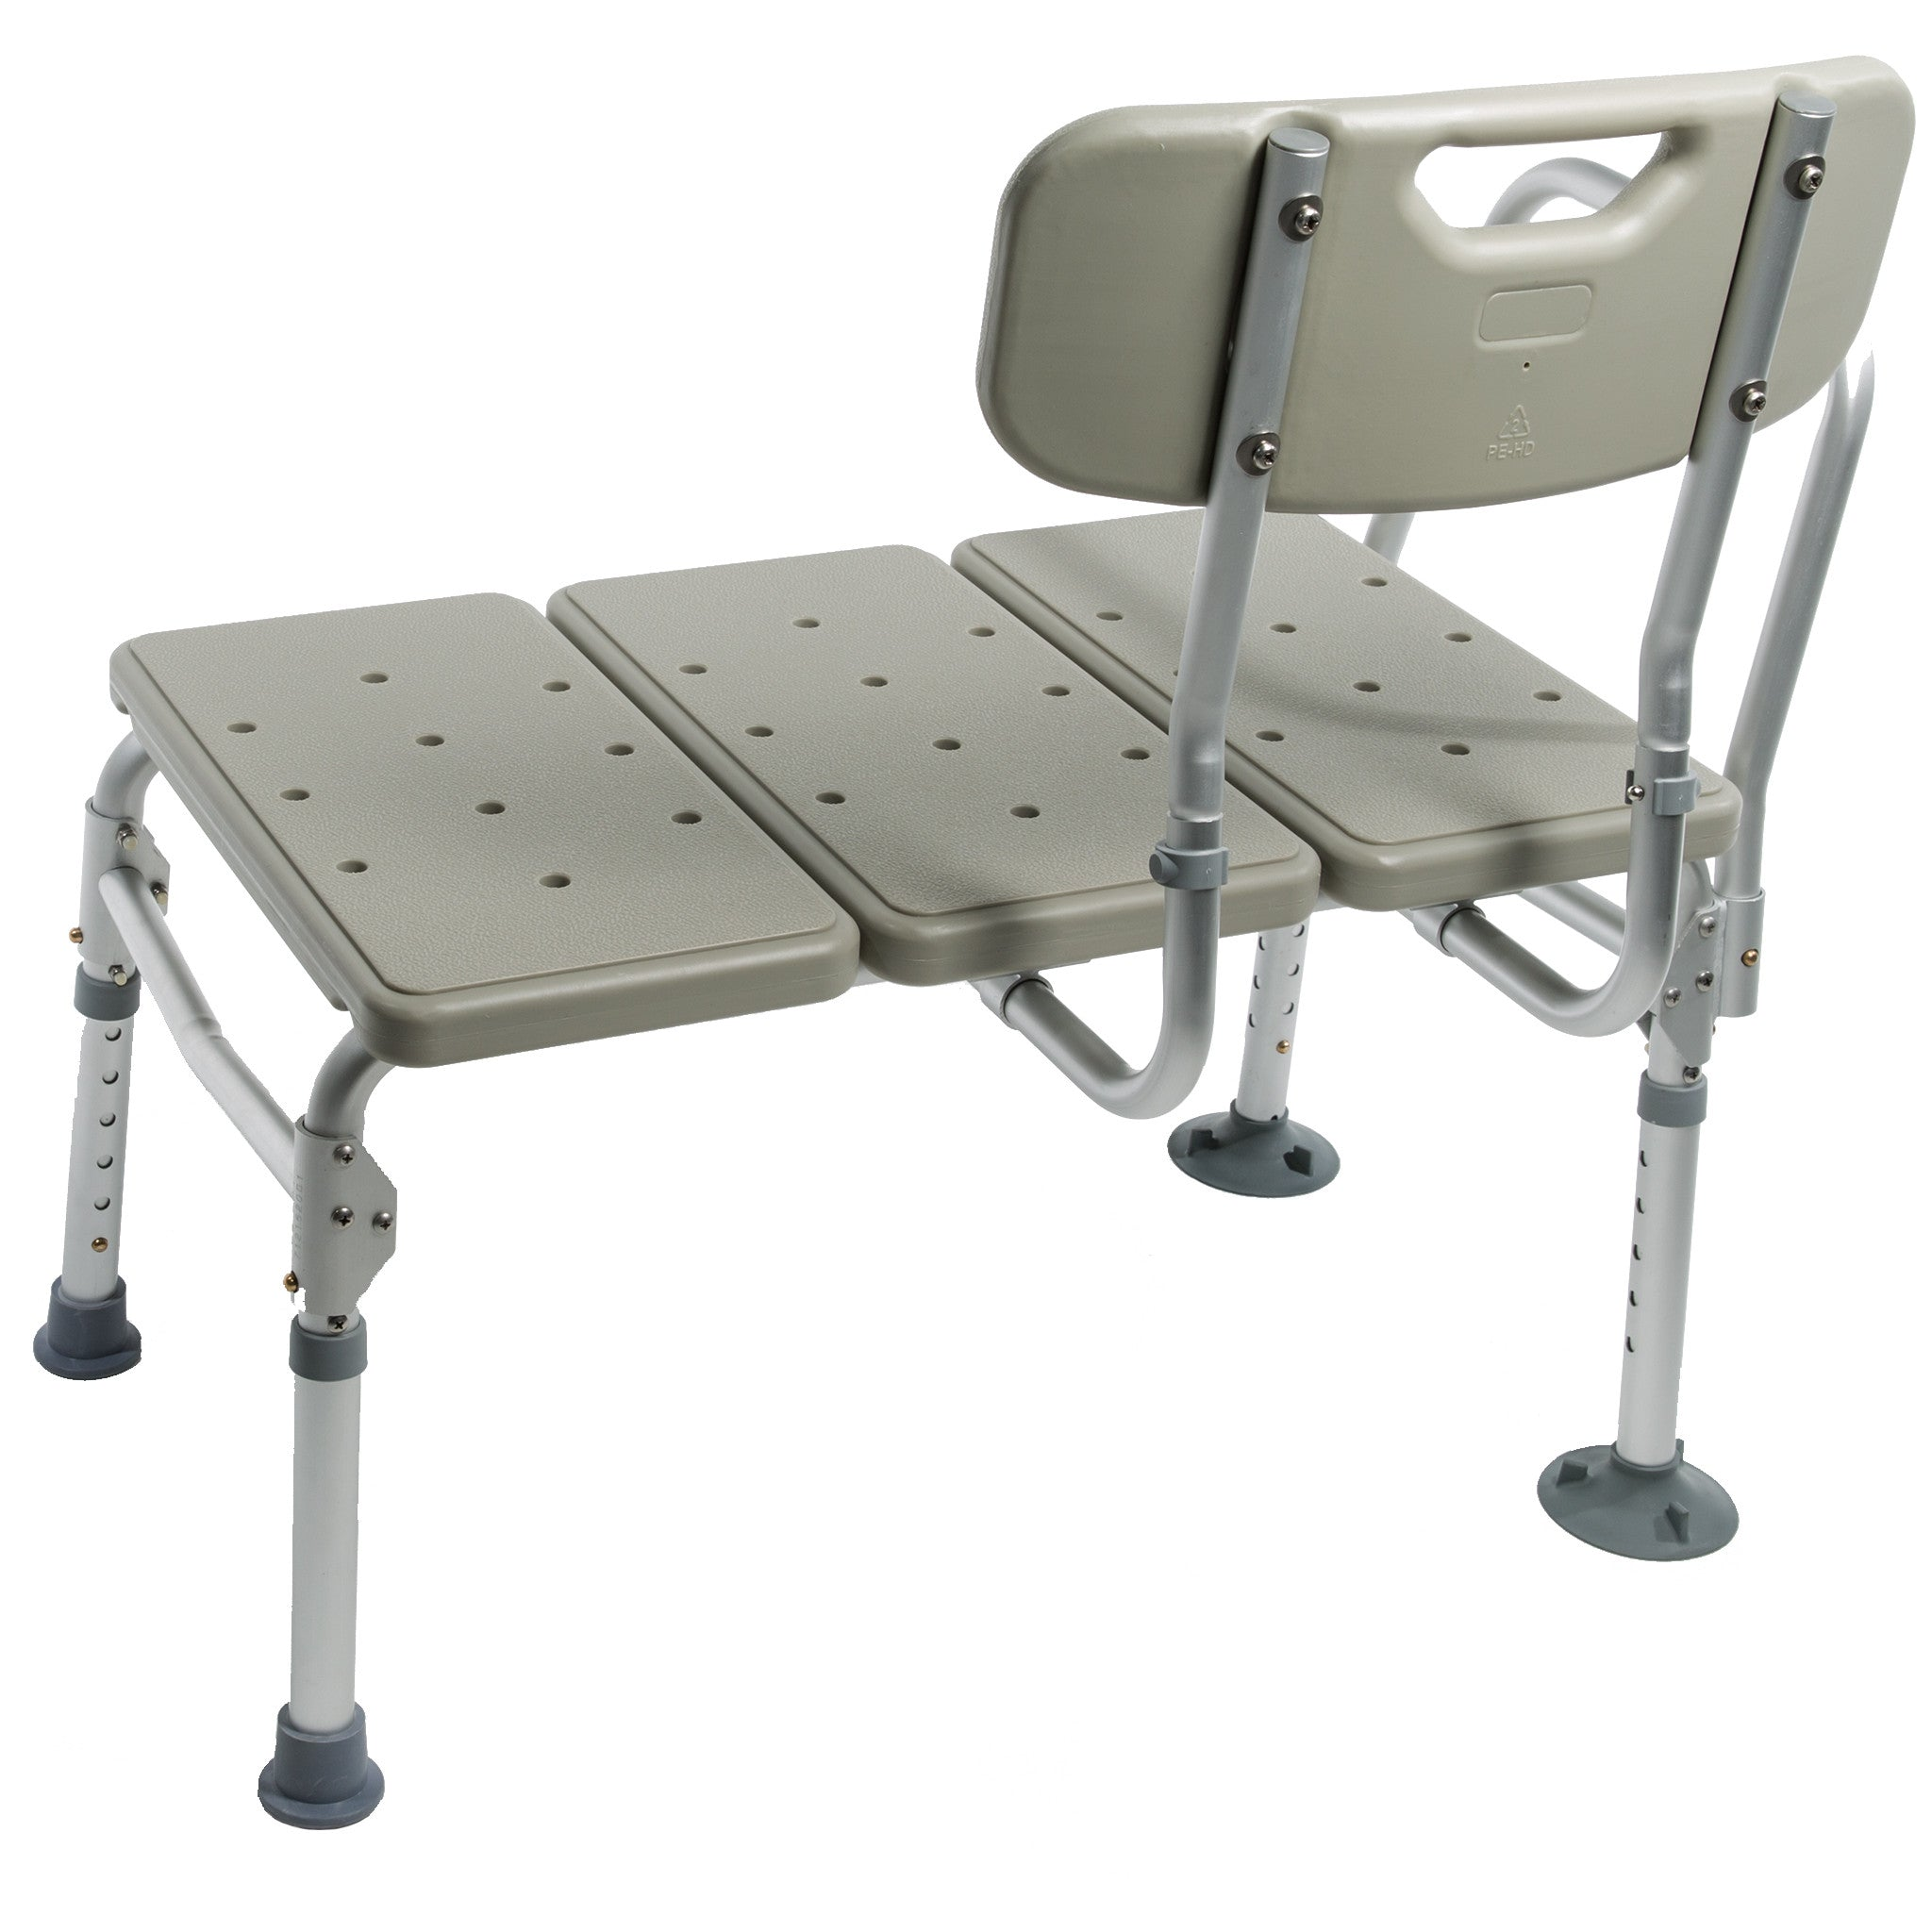 Bath & Shower Folding Transfer Bench - Free Shipping - Home Medical ...